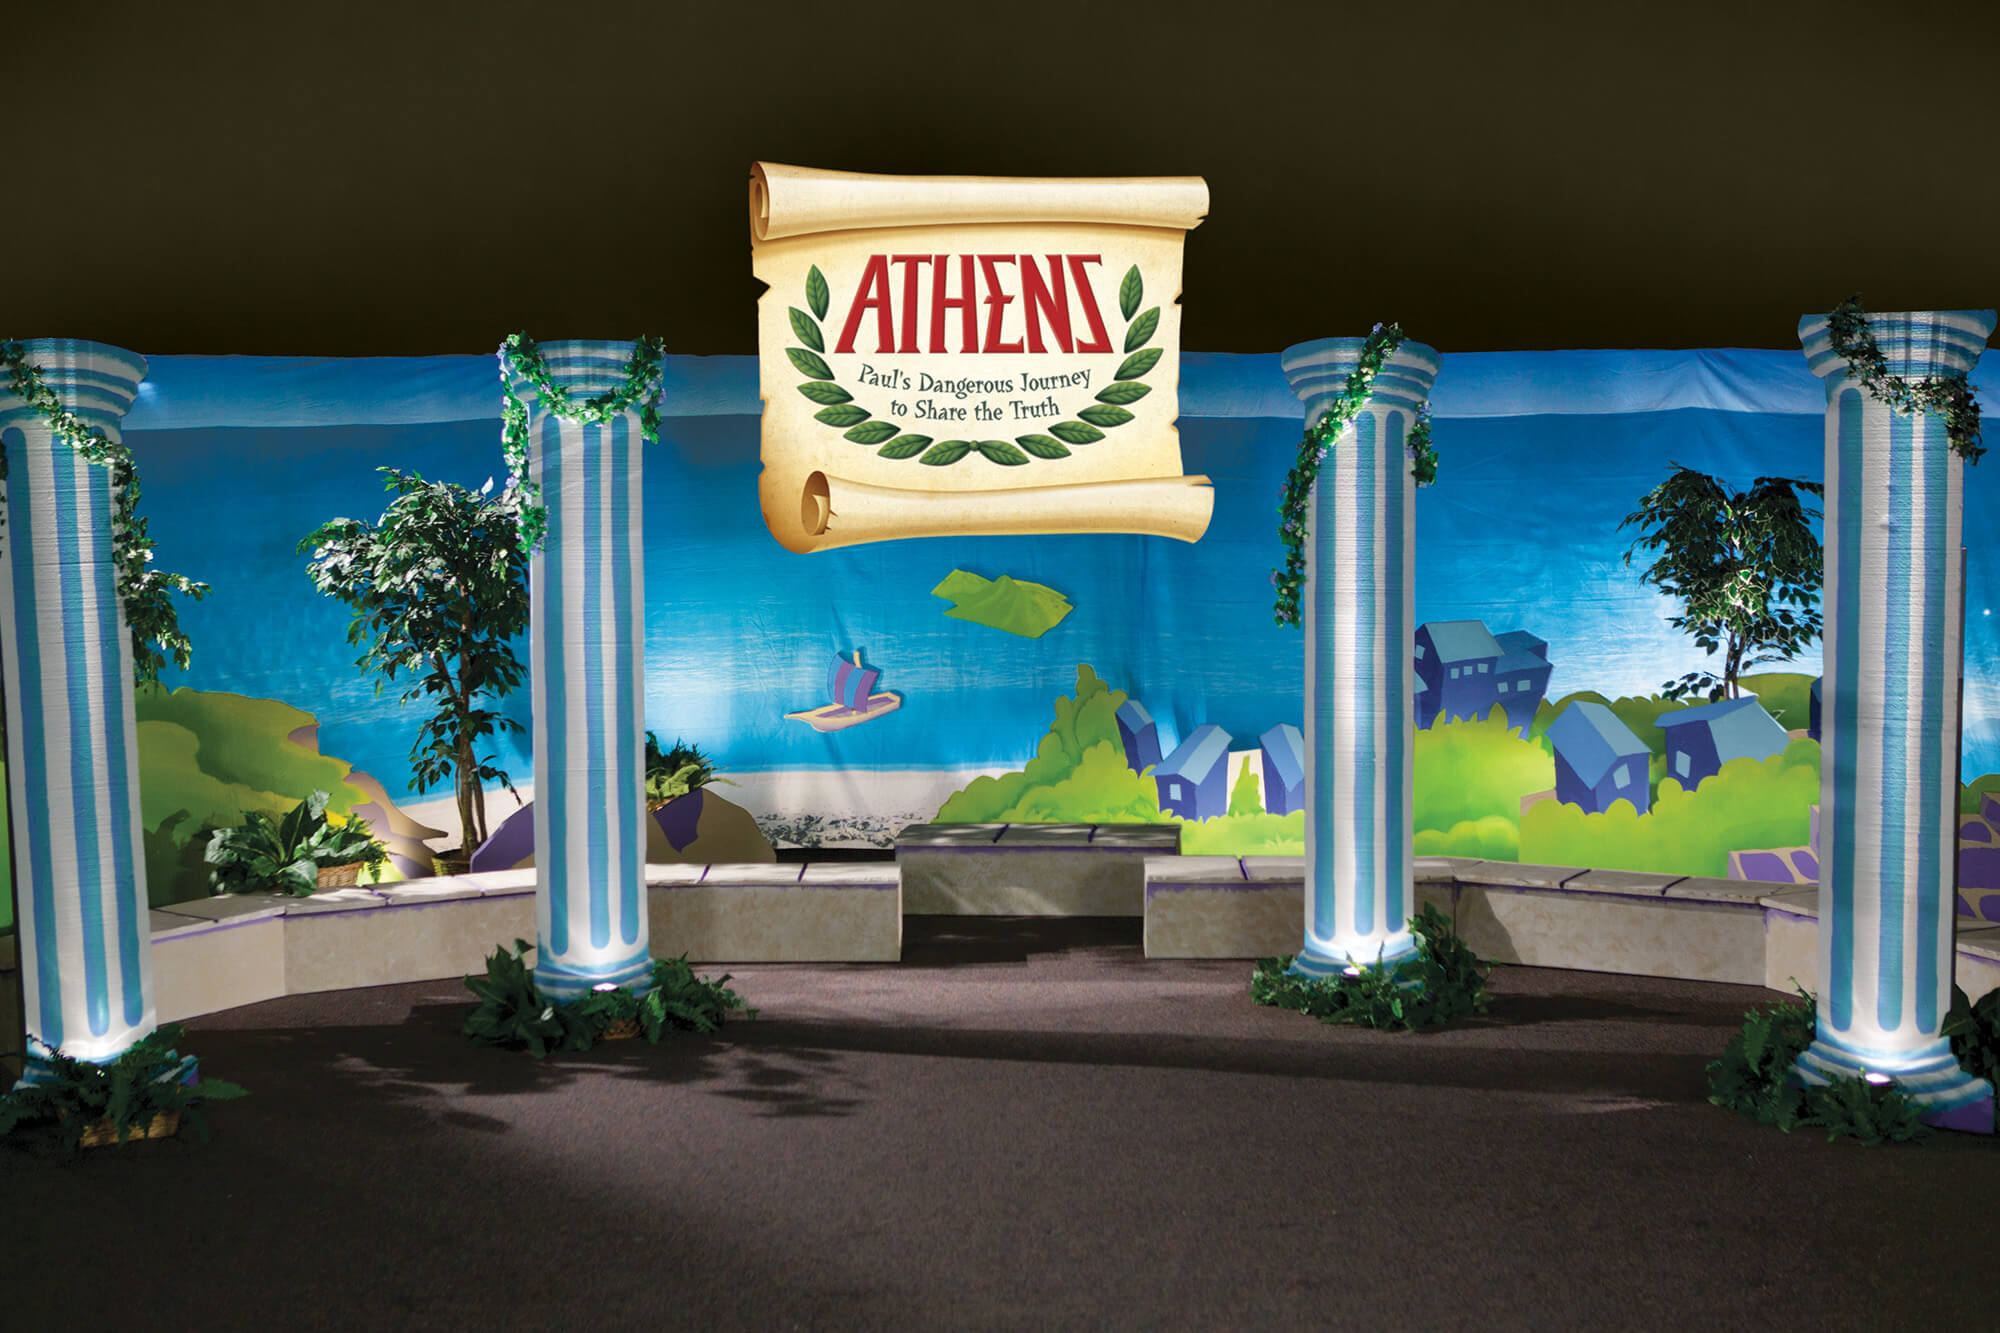 Athens Main Set Design